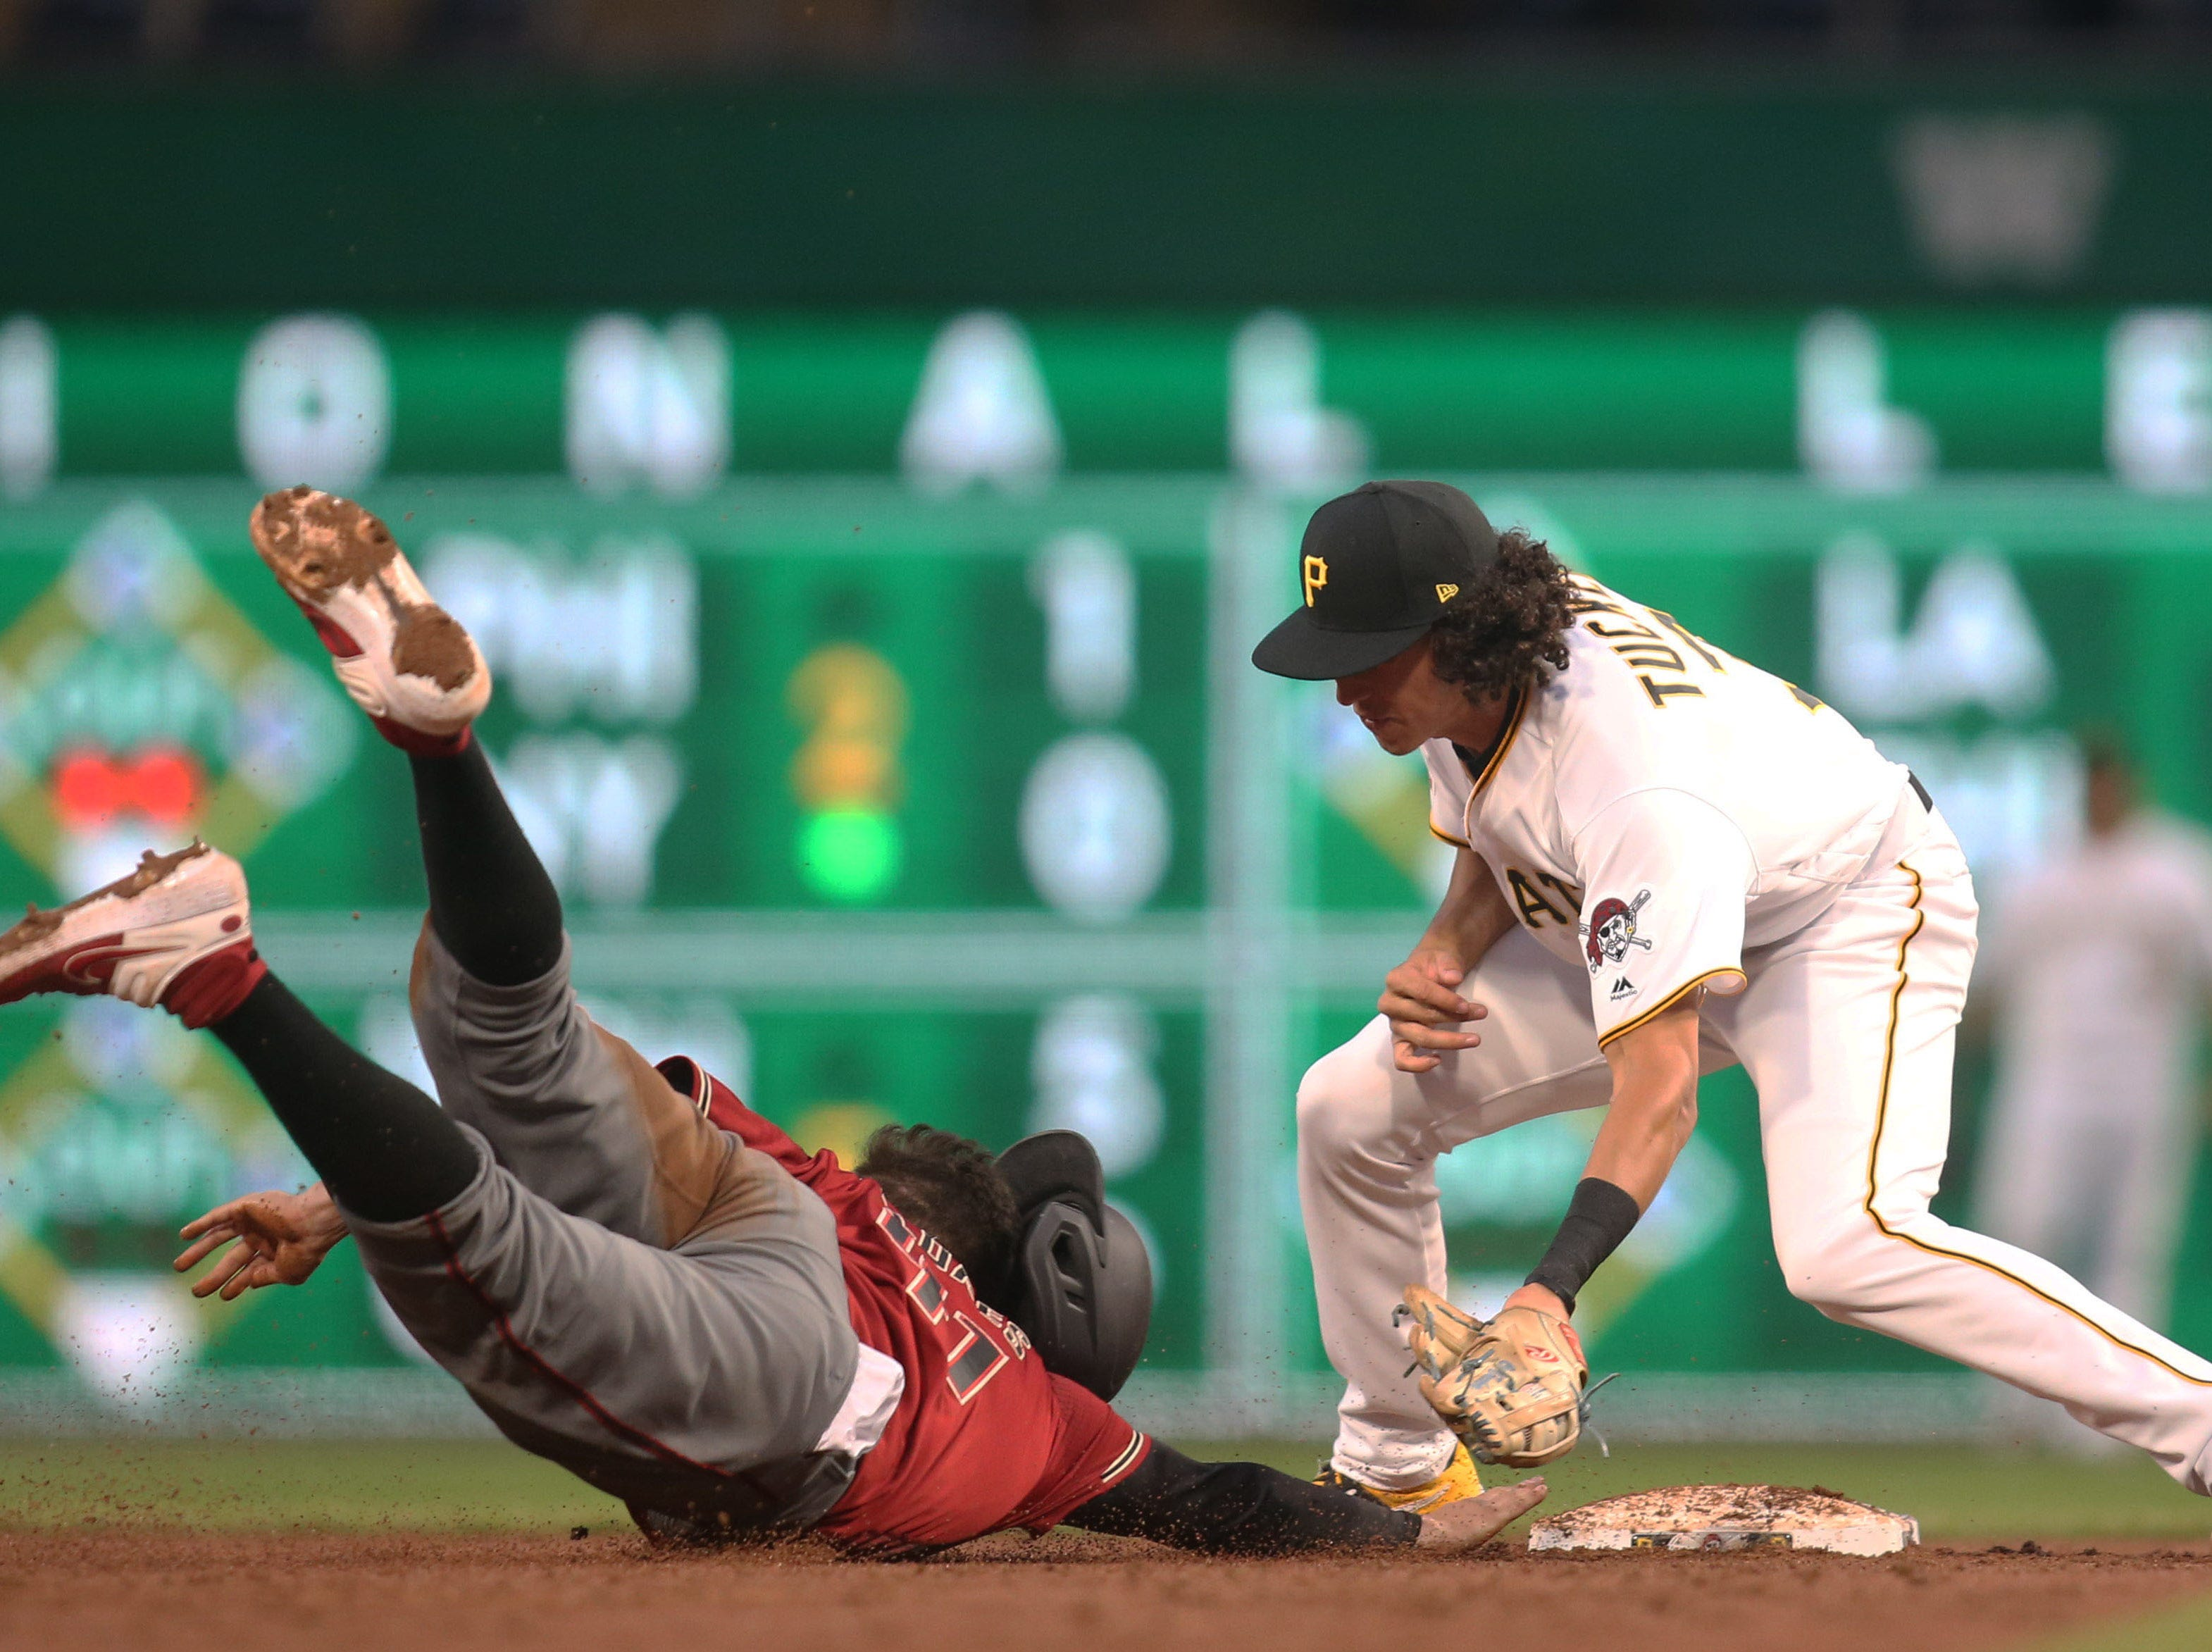 Apr 24, 2019; Pittsburgh, PA, USA;  Arizona Diamondbacks second baseman Wilmer Flores (41) is picked off of second base as Pittsburgh Pirates shortstop Cole Tucker (3) applies the tag during the third inning at PNC Park. Mandatory Credit: Charles LeClaire-USA TODAY Sports